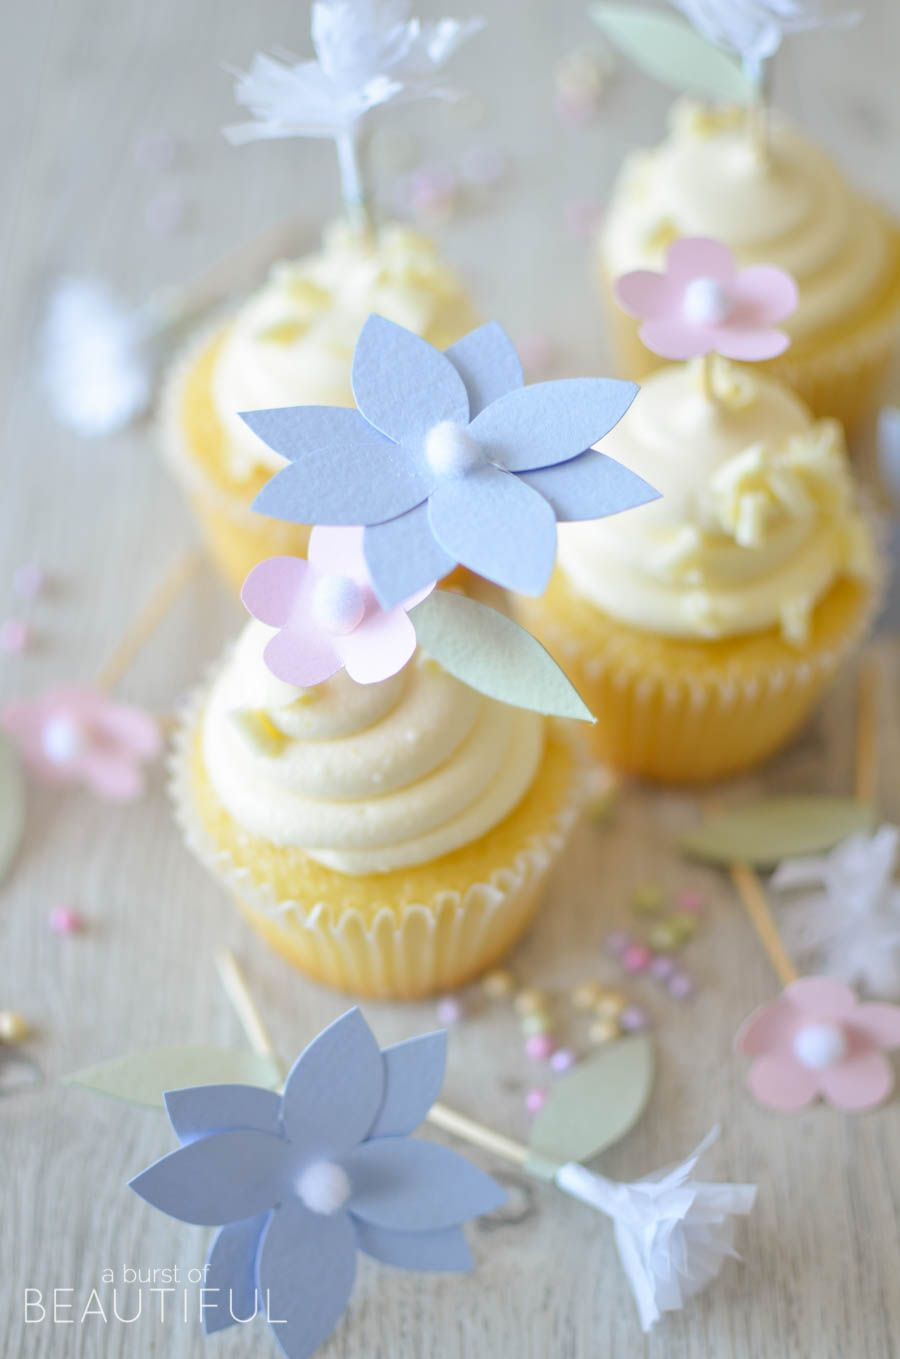 Diy flower cupcake toppers home decorating ideas bhome hello craftberry bush friends it alicia from a burst of beautiful and i am so happy to be joining you once again today i have a really sweet project to izmirmasajfo